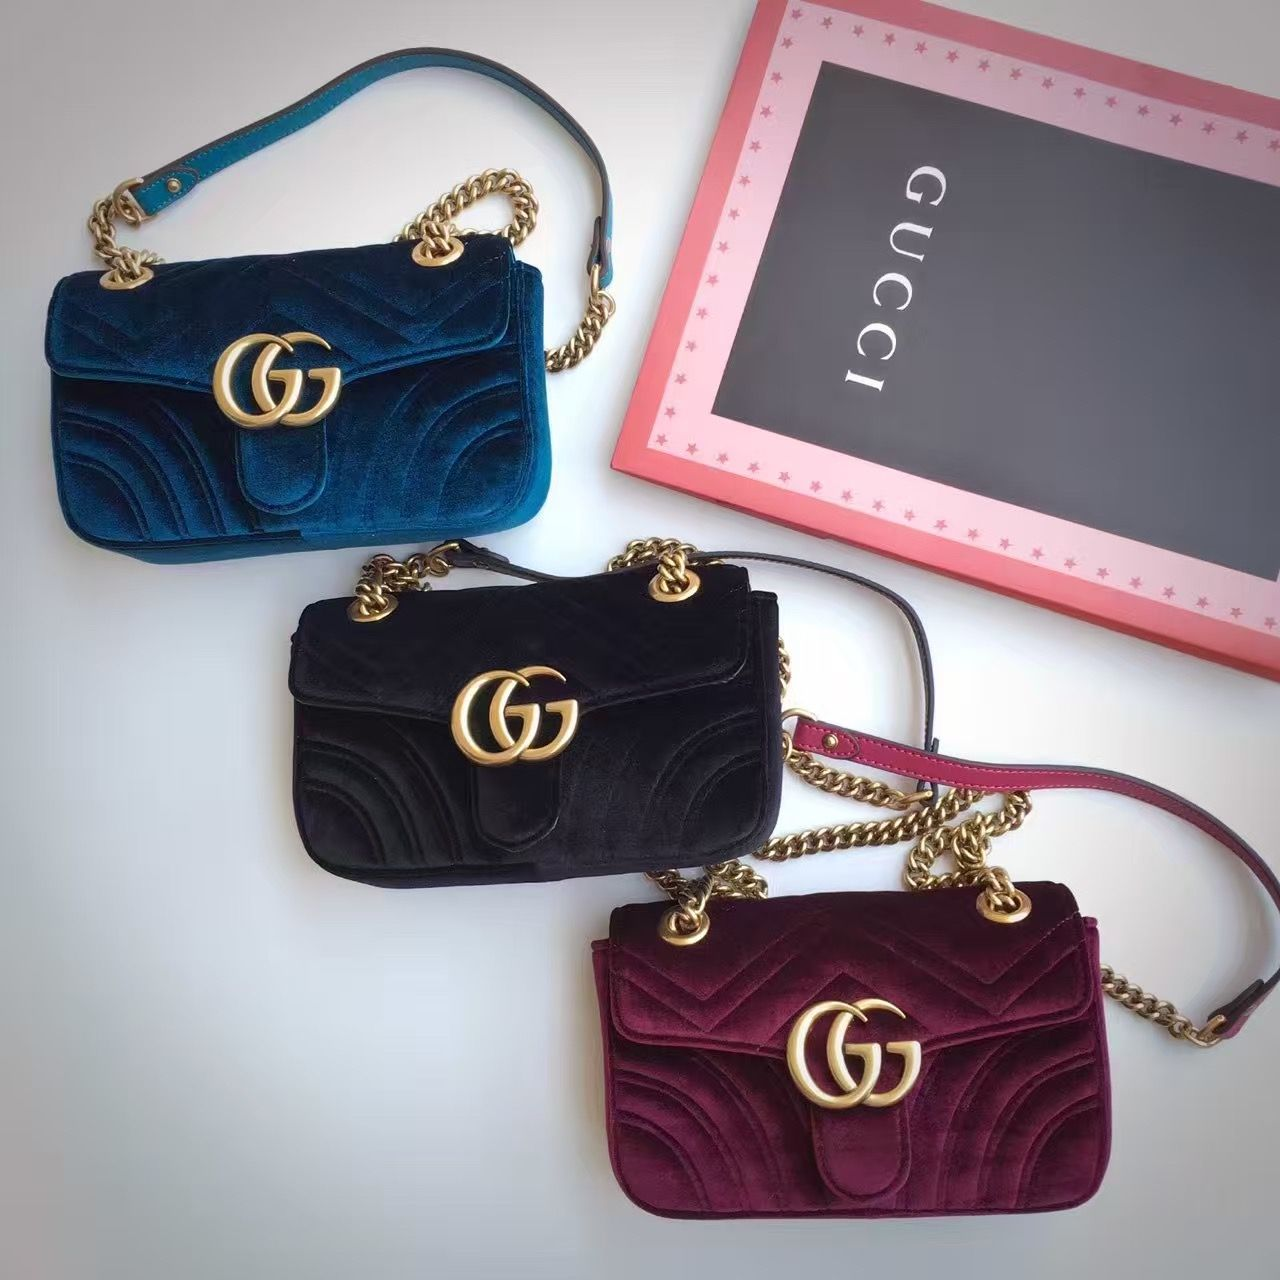 $218 Gucci GG Marmont Velvet Mini Shoulder Bag 2016 Email